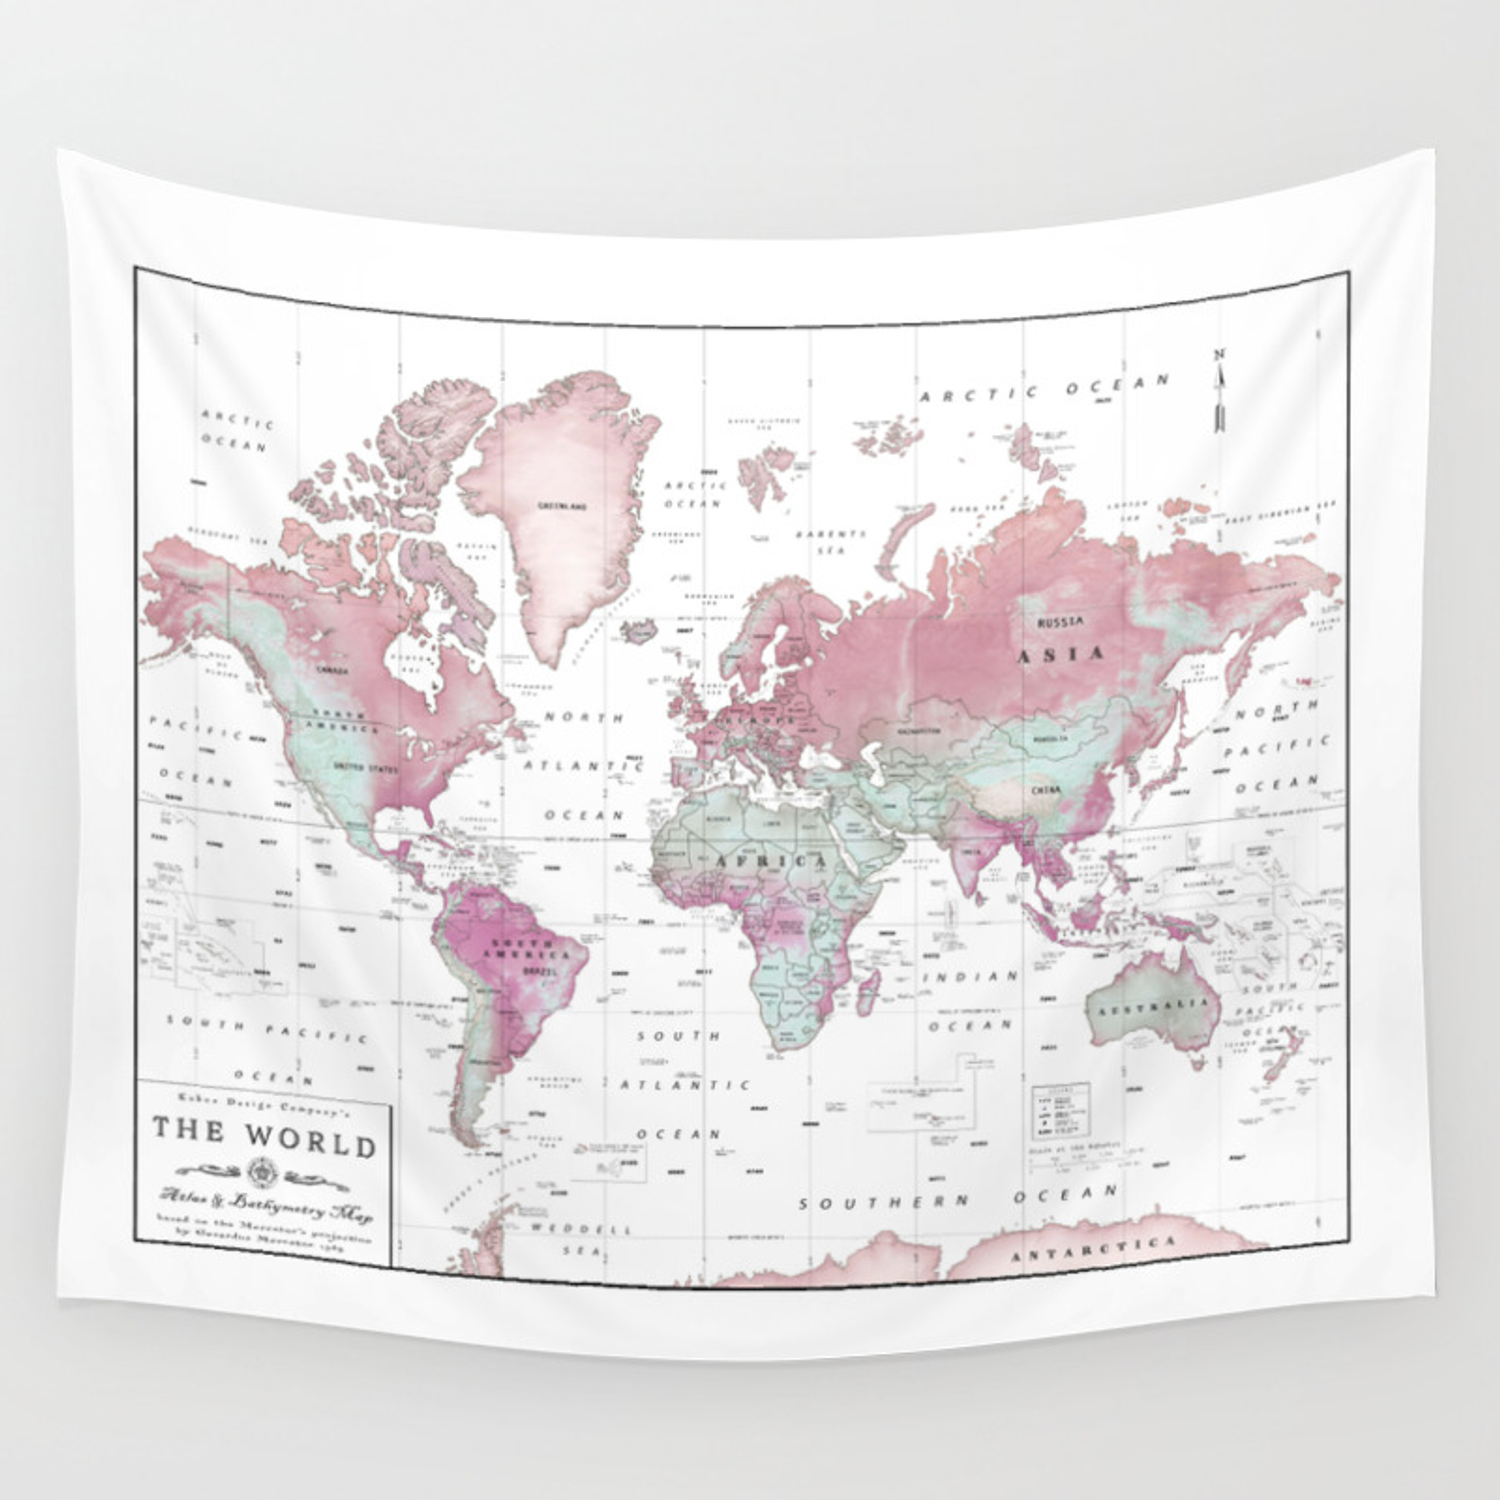 World Map Wall Tapestry World Map Wall Art [Pink Hues] Wall Tapestry by kokuadesigncompany